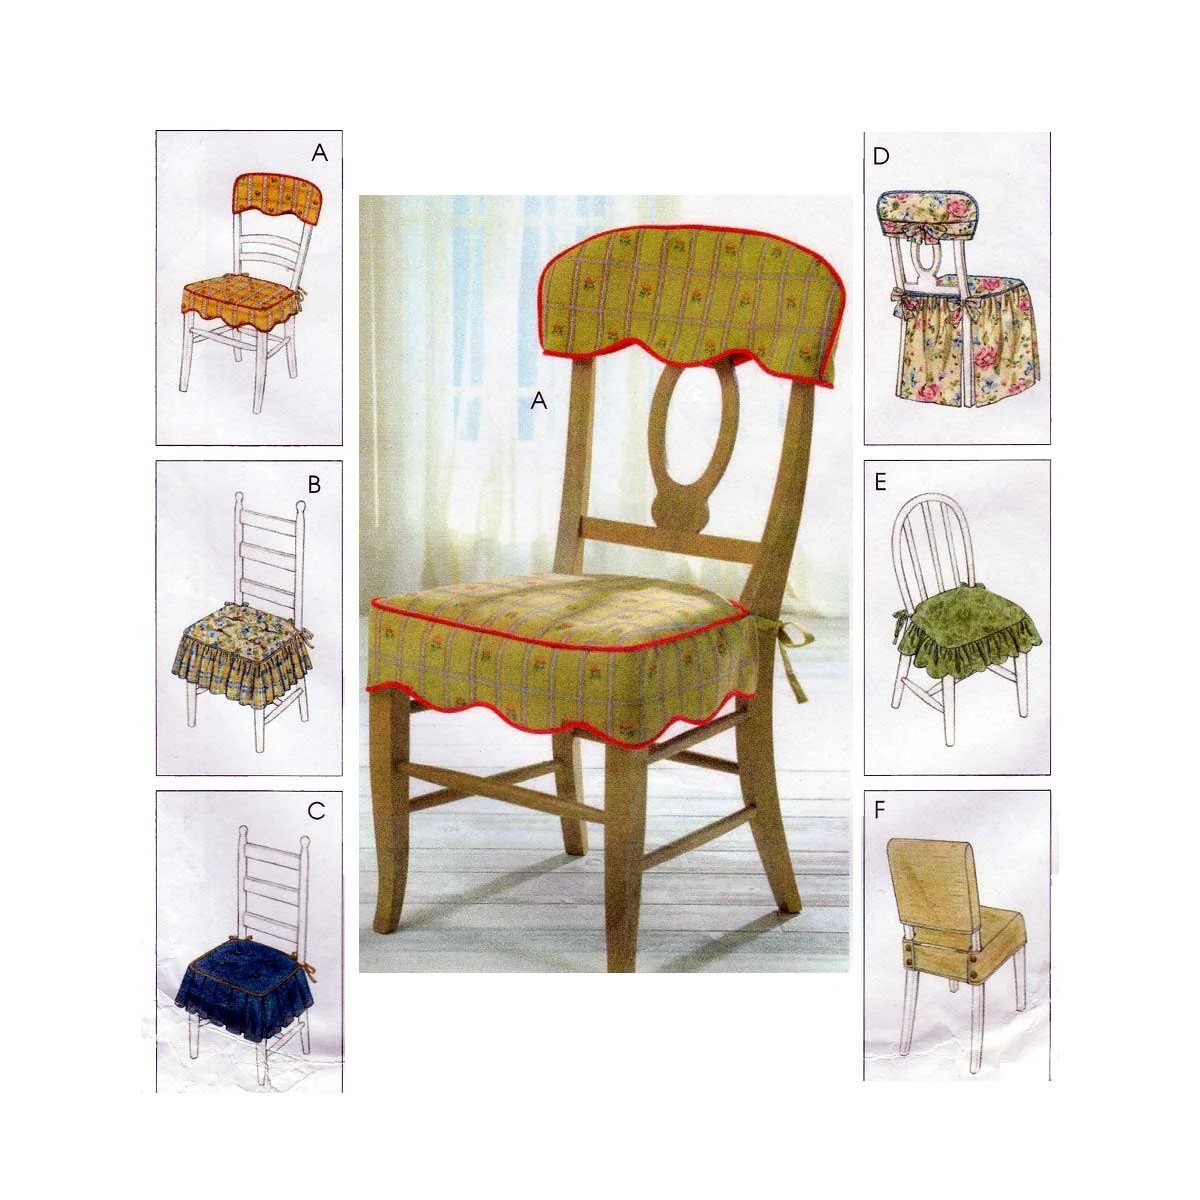 sewing patterns for chair cushions comfortable computer chairs home decorating pattern cover essentials seat